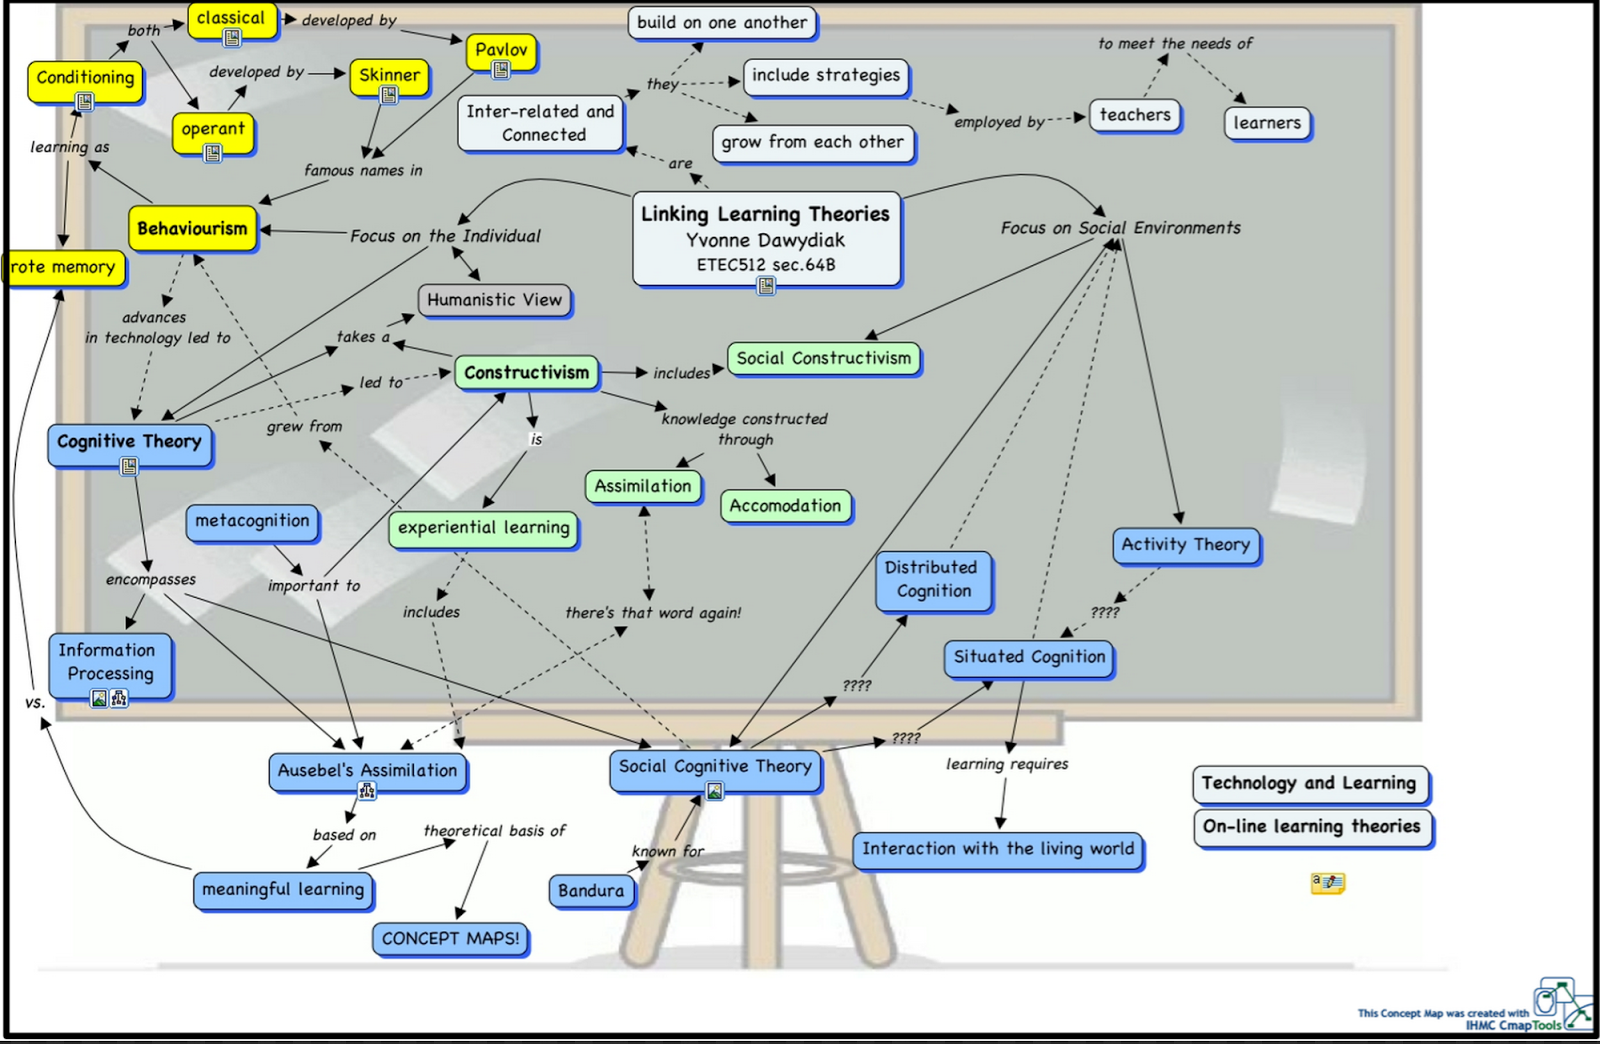 Main Learning Theories: concept map